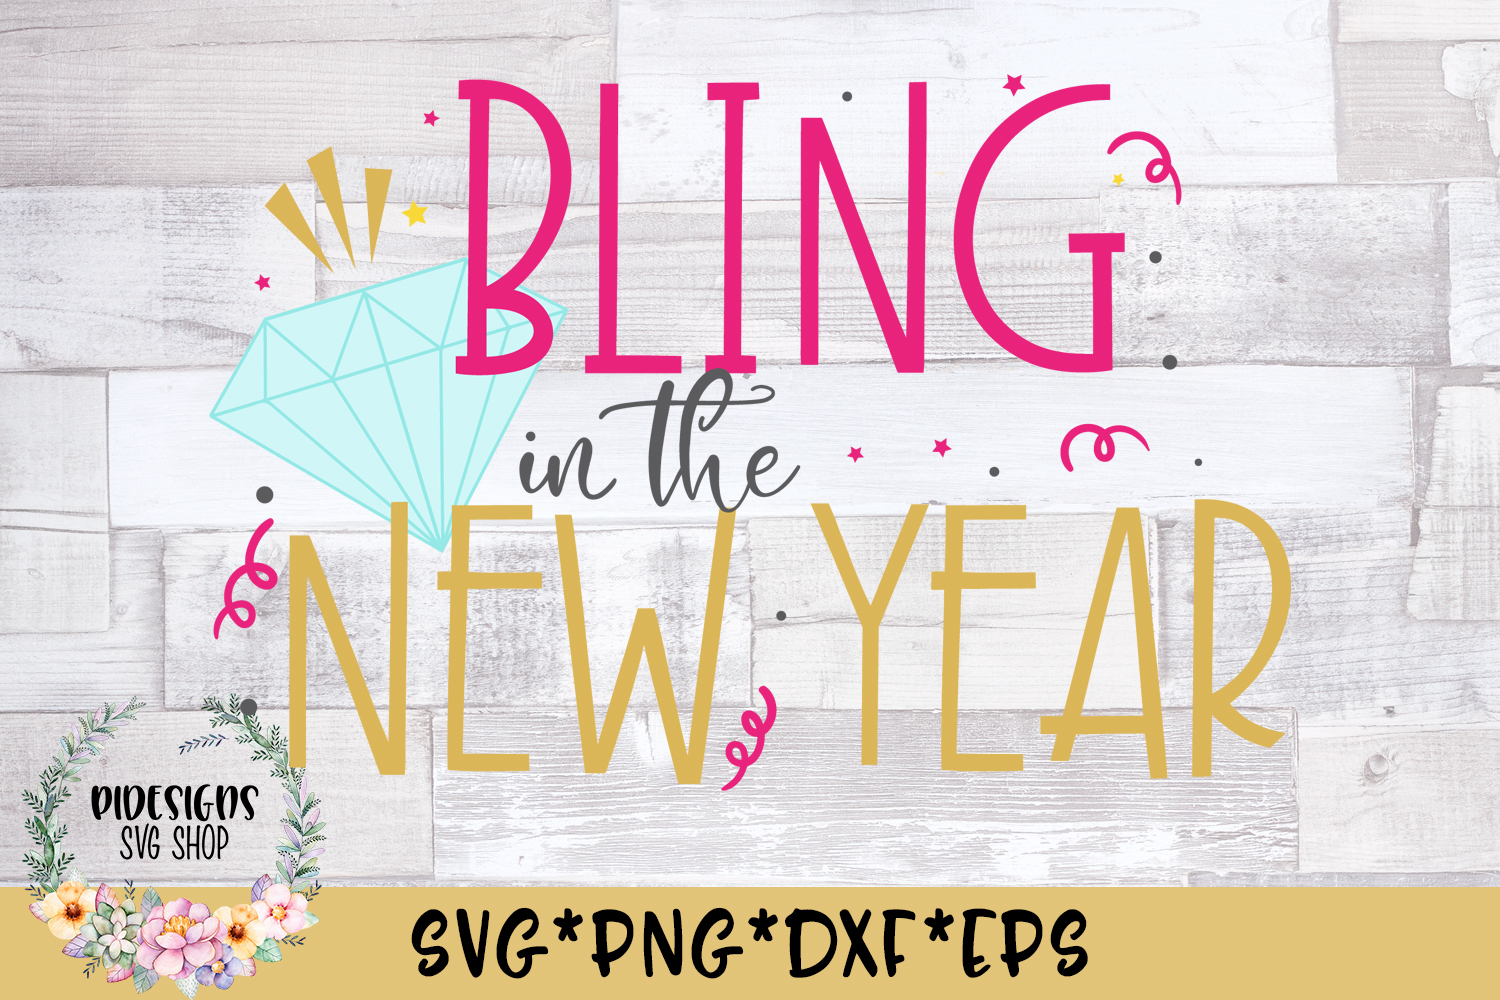 Bling In The New Year SVG Cut File example image 1